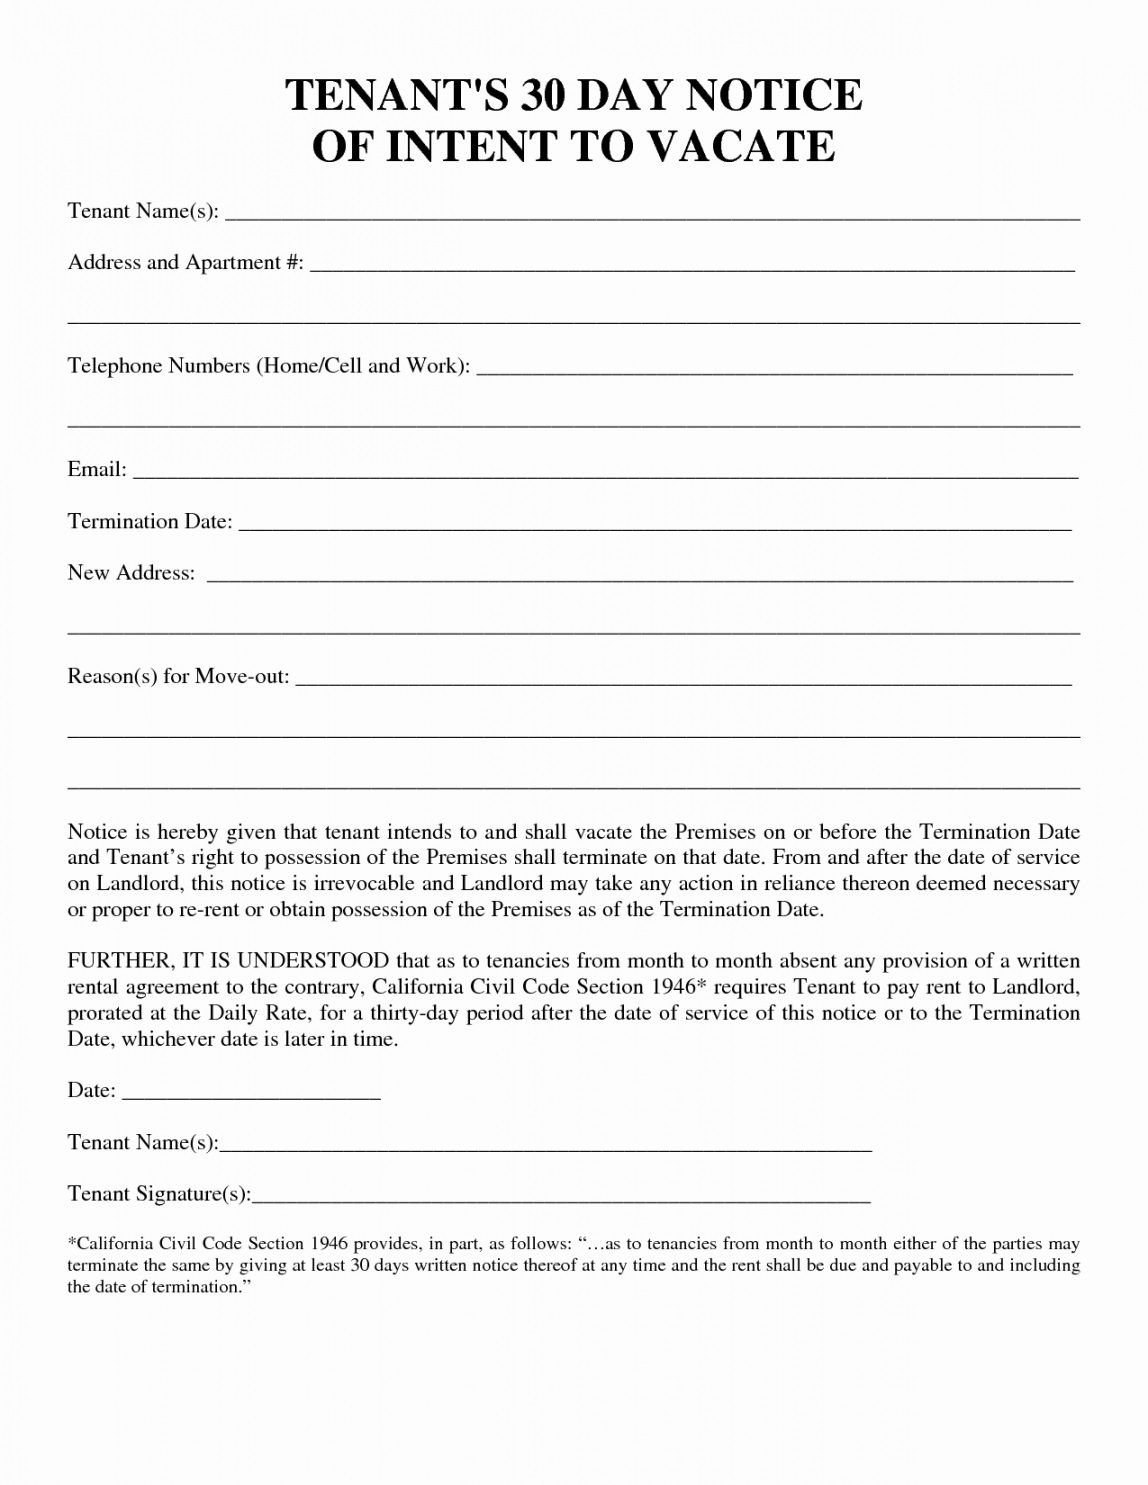 005 Frightening 30 Day Eviction Notice Template Photo  Pdf FormFull